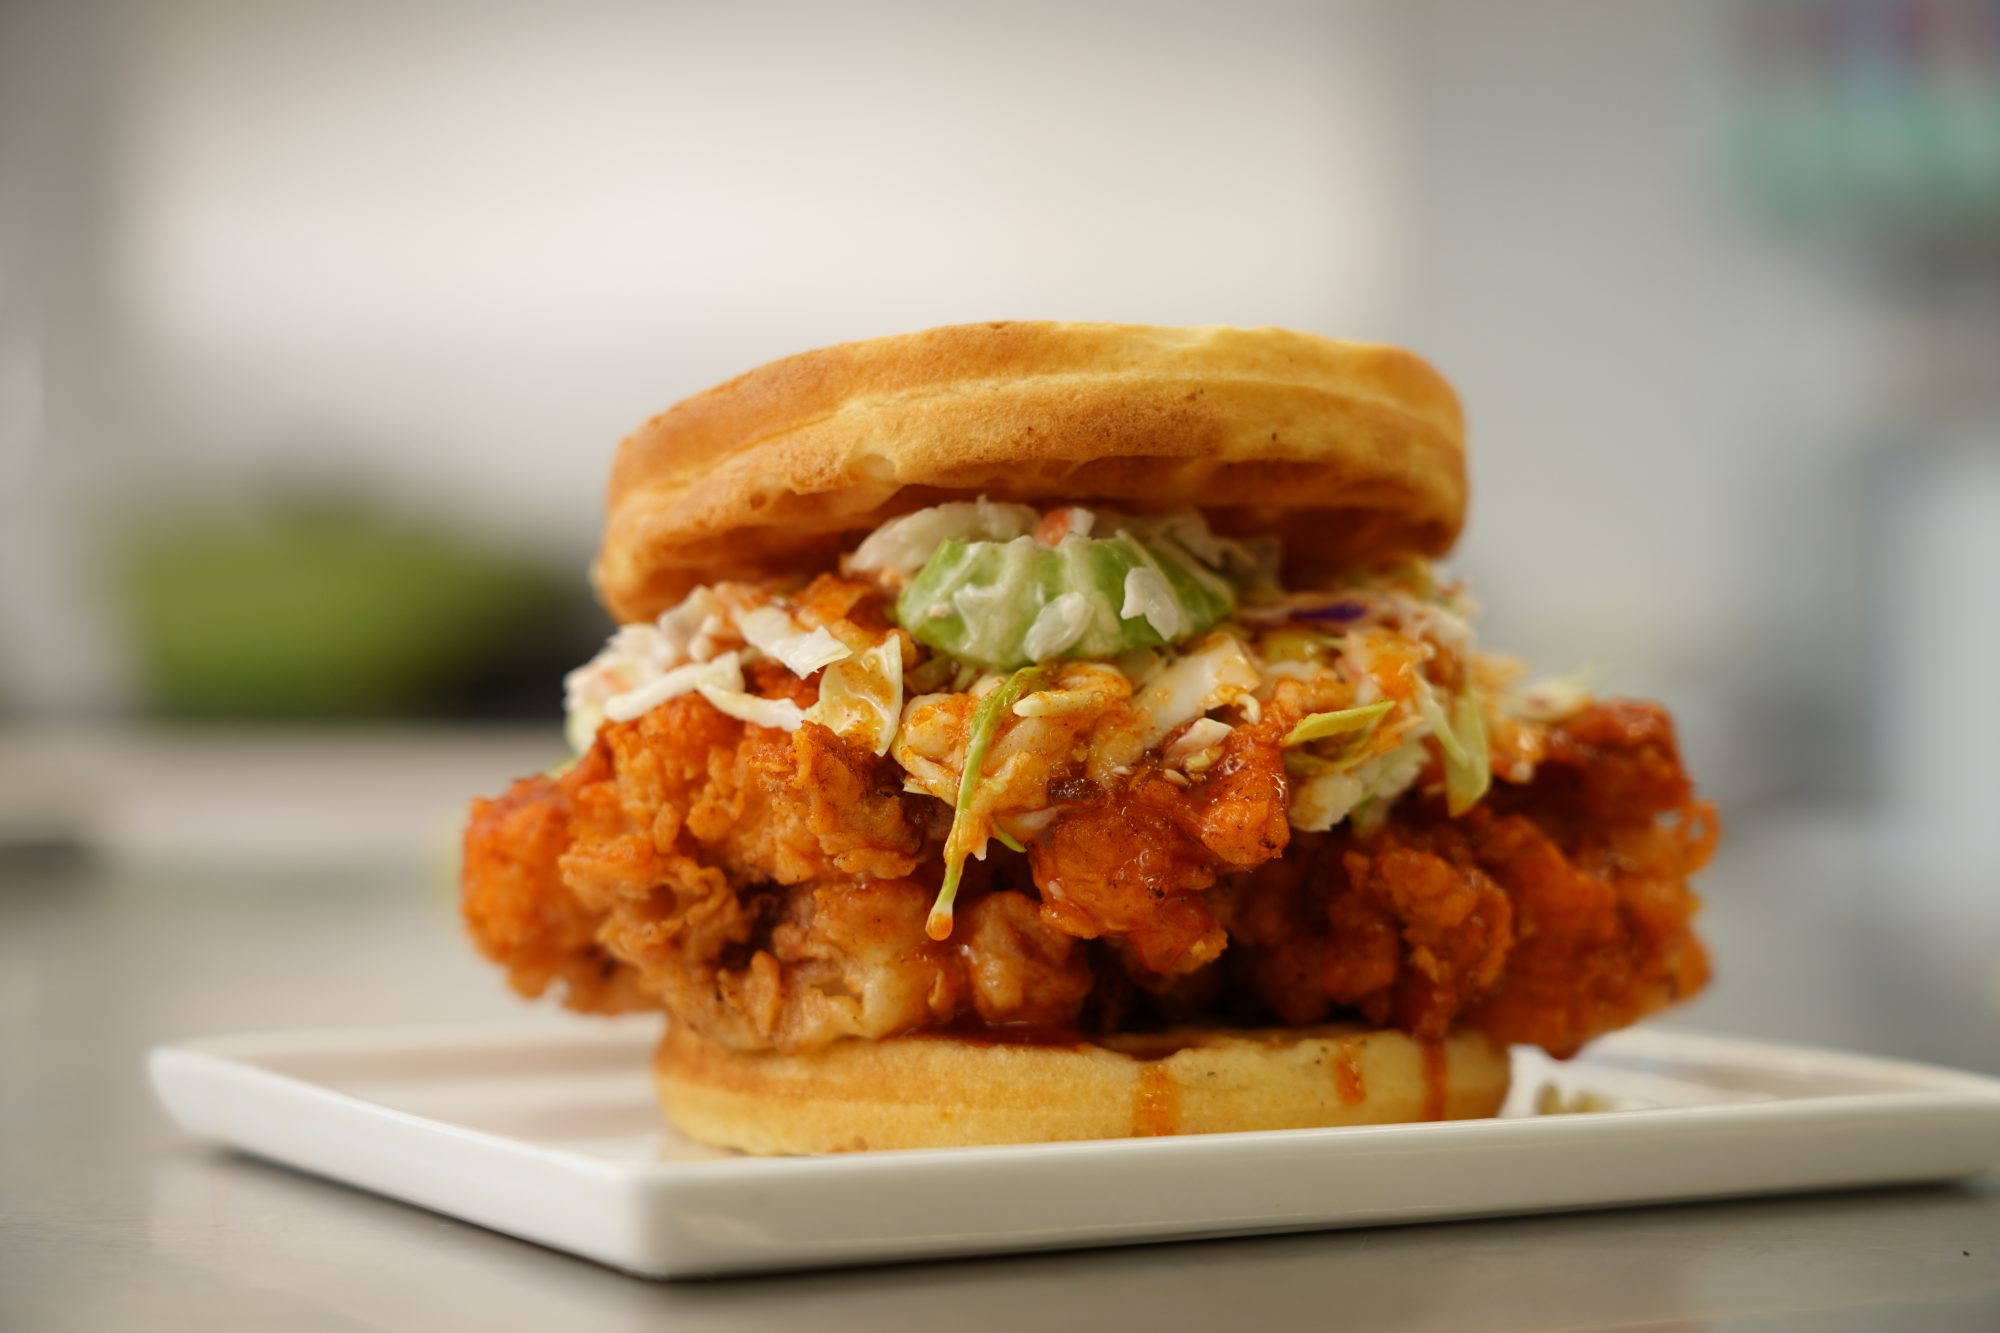 fried chicken and waffle sandwich topped with coleslaw